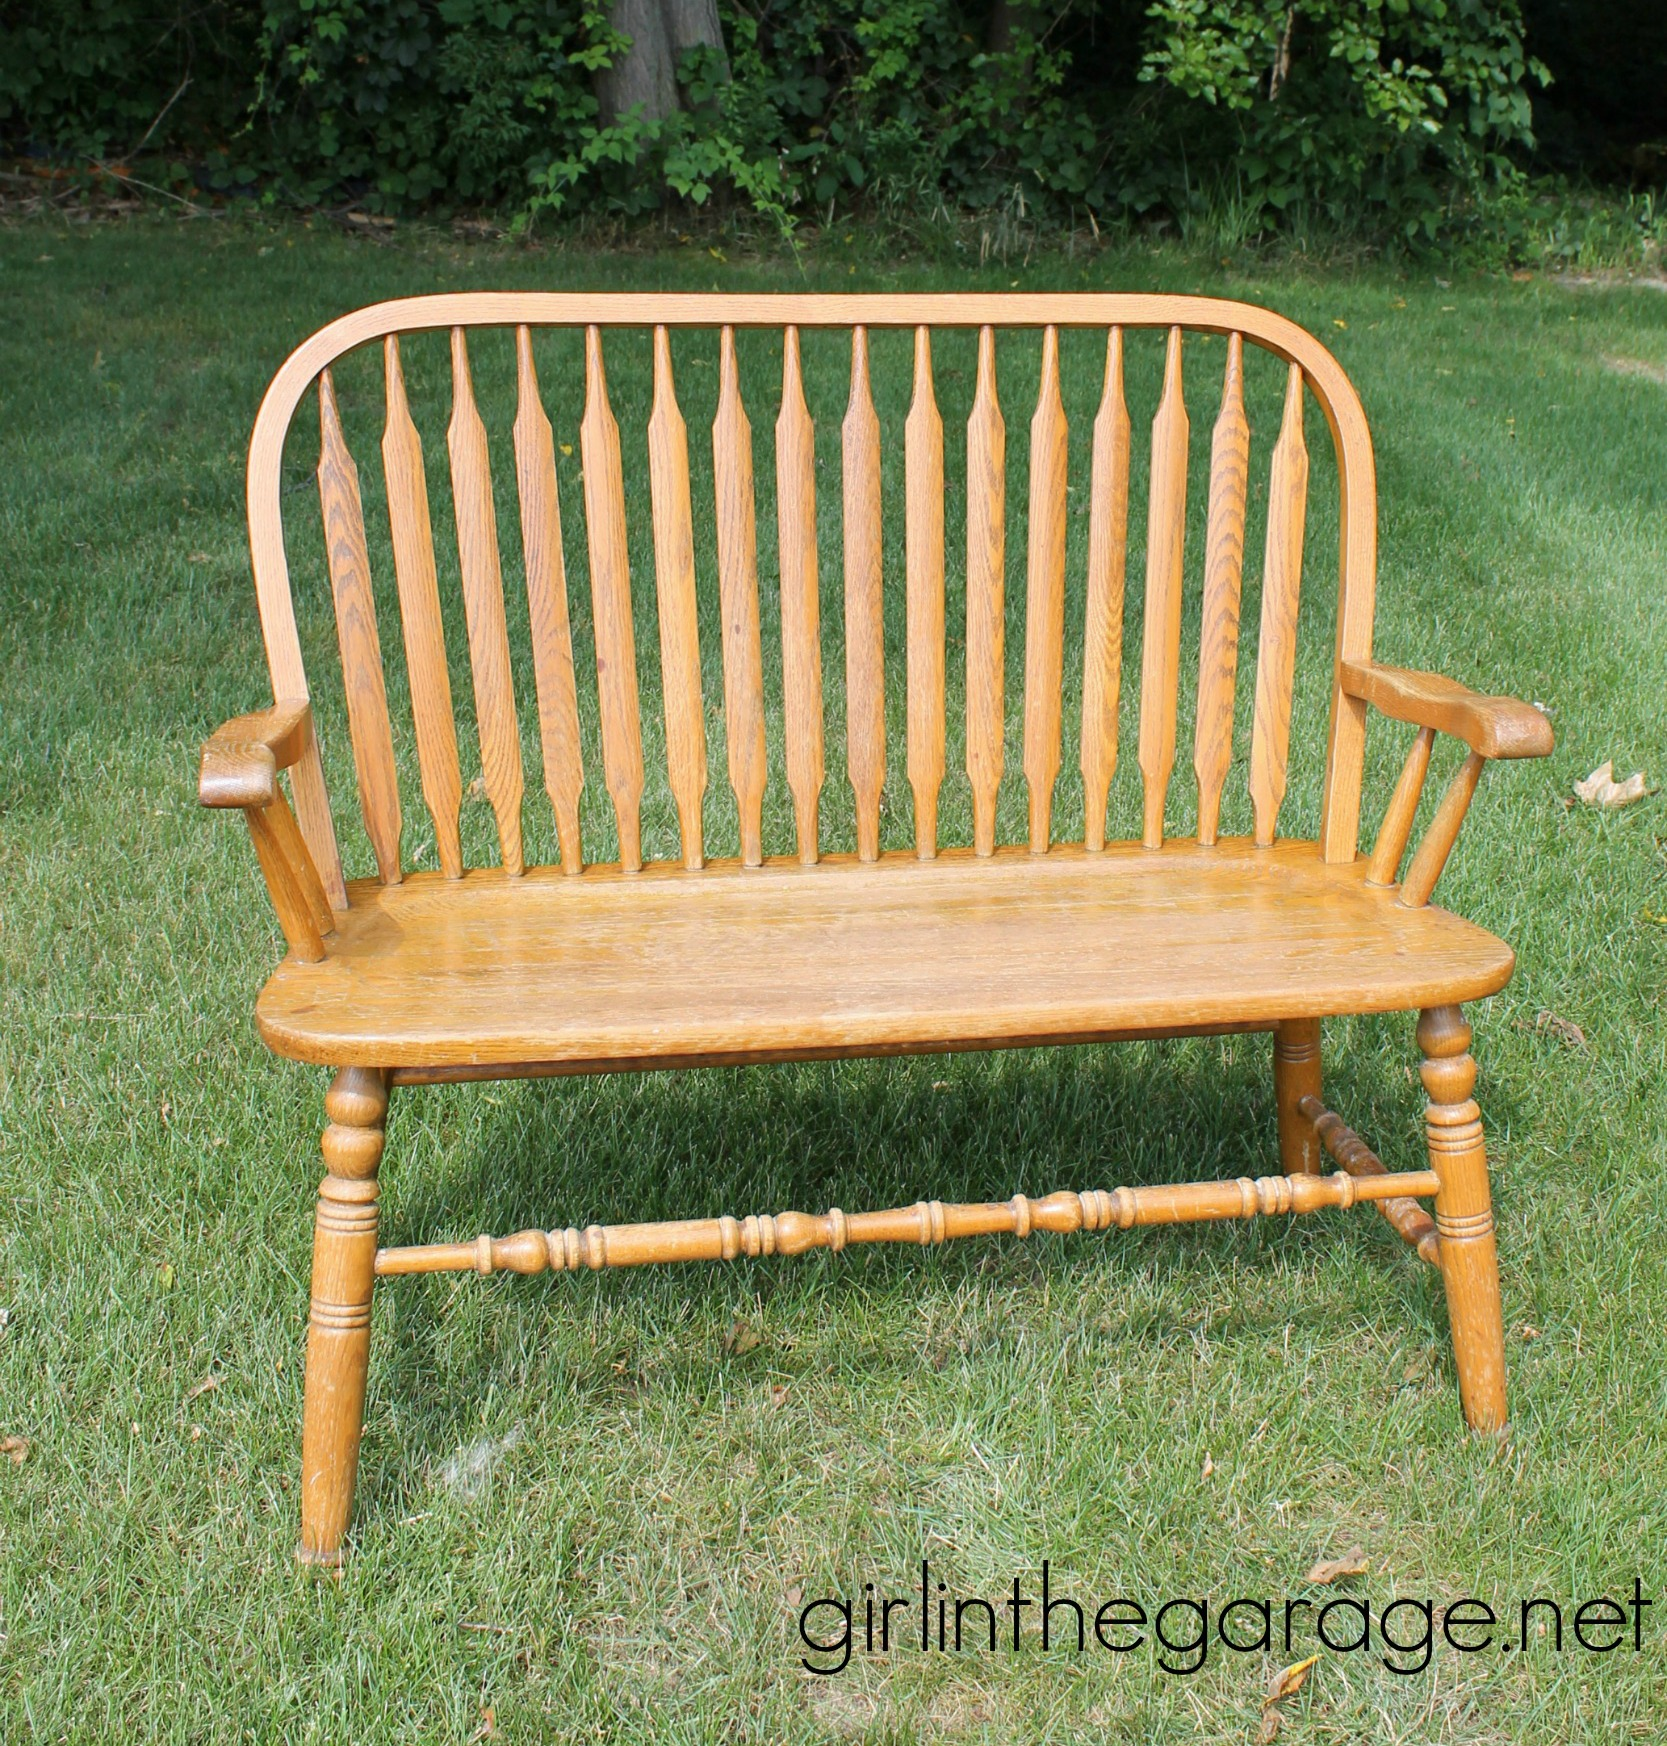 Before: Weathered Wood Bench Makeover With Annie Sloan Chalk Paint In Old  Ochre. Girlinthegarage